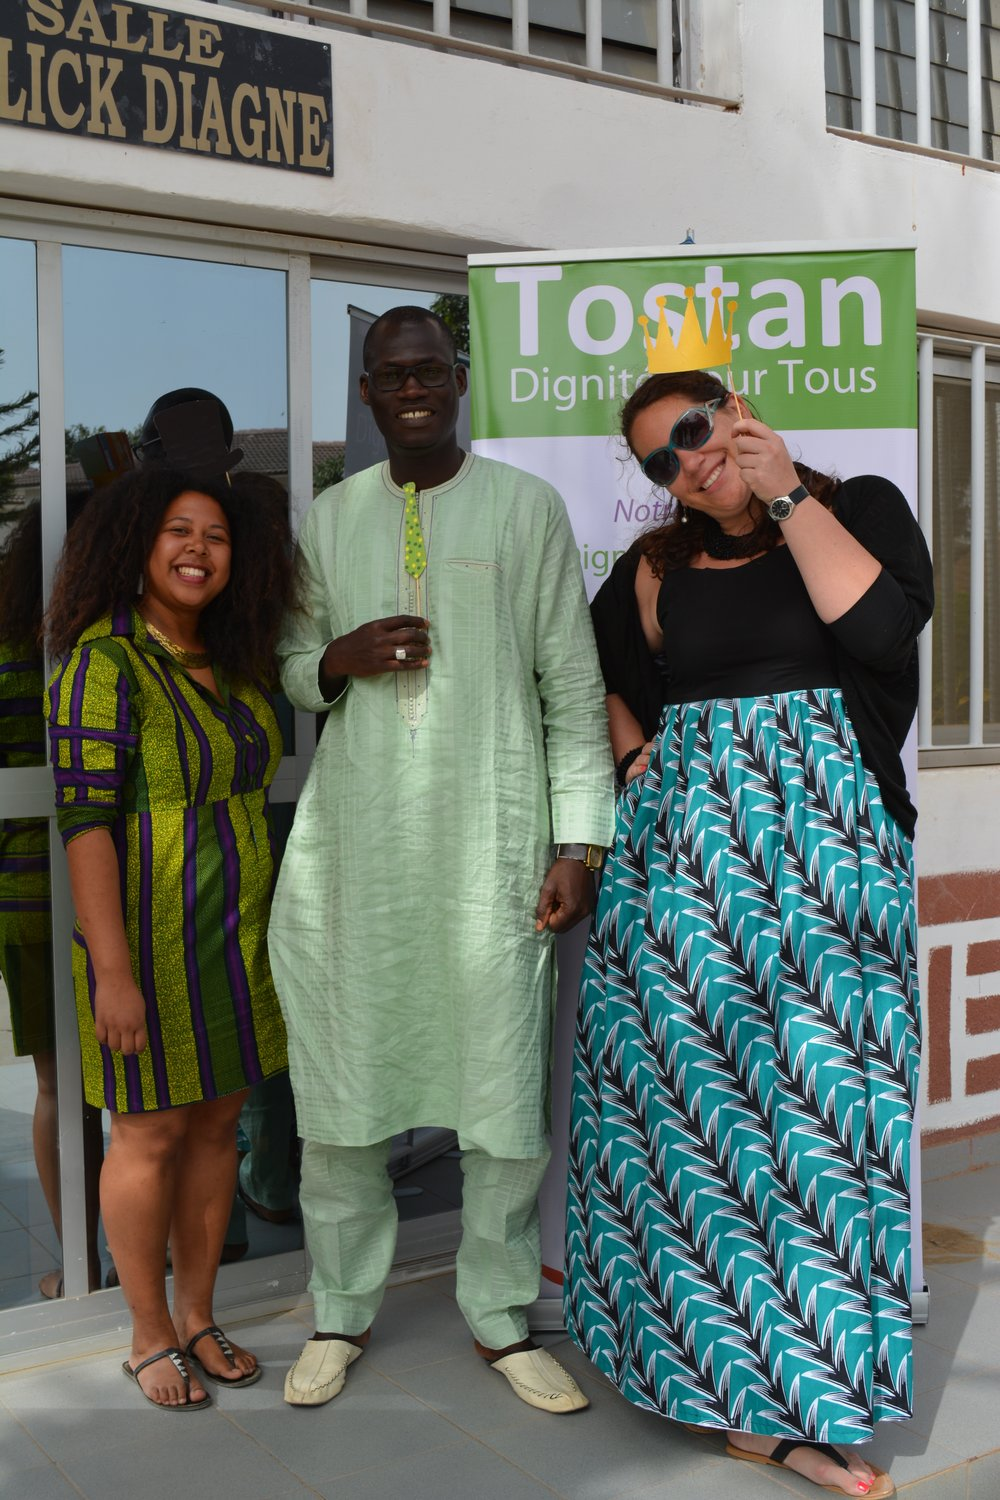 Hosting an event with Haingo Rakotomala and Birima Fall at the Tostan Training Center in Thies, Senegal. June 2016.